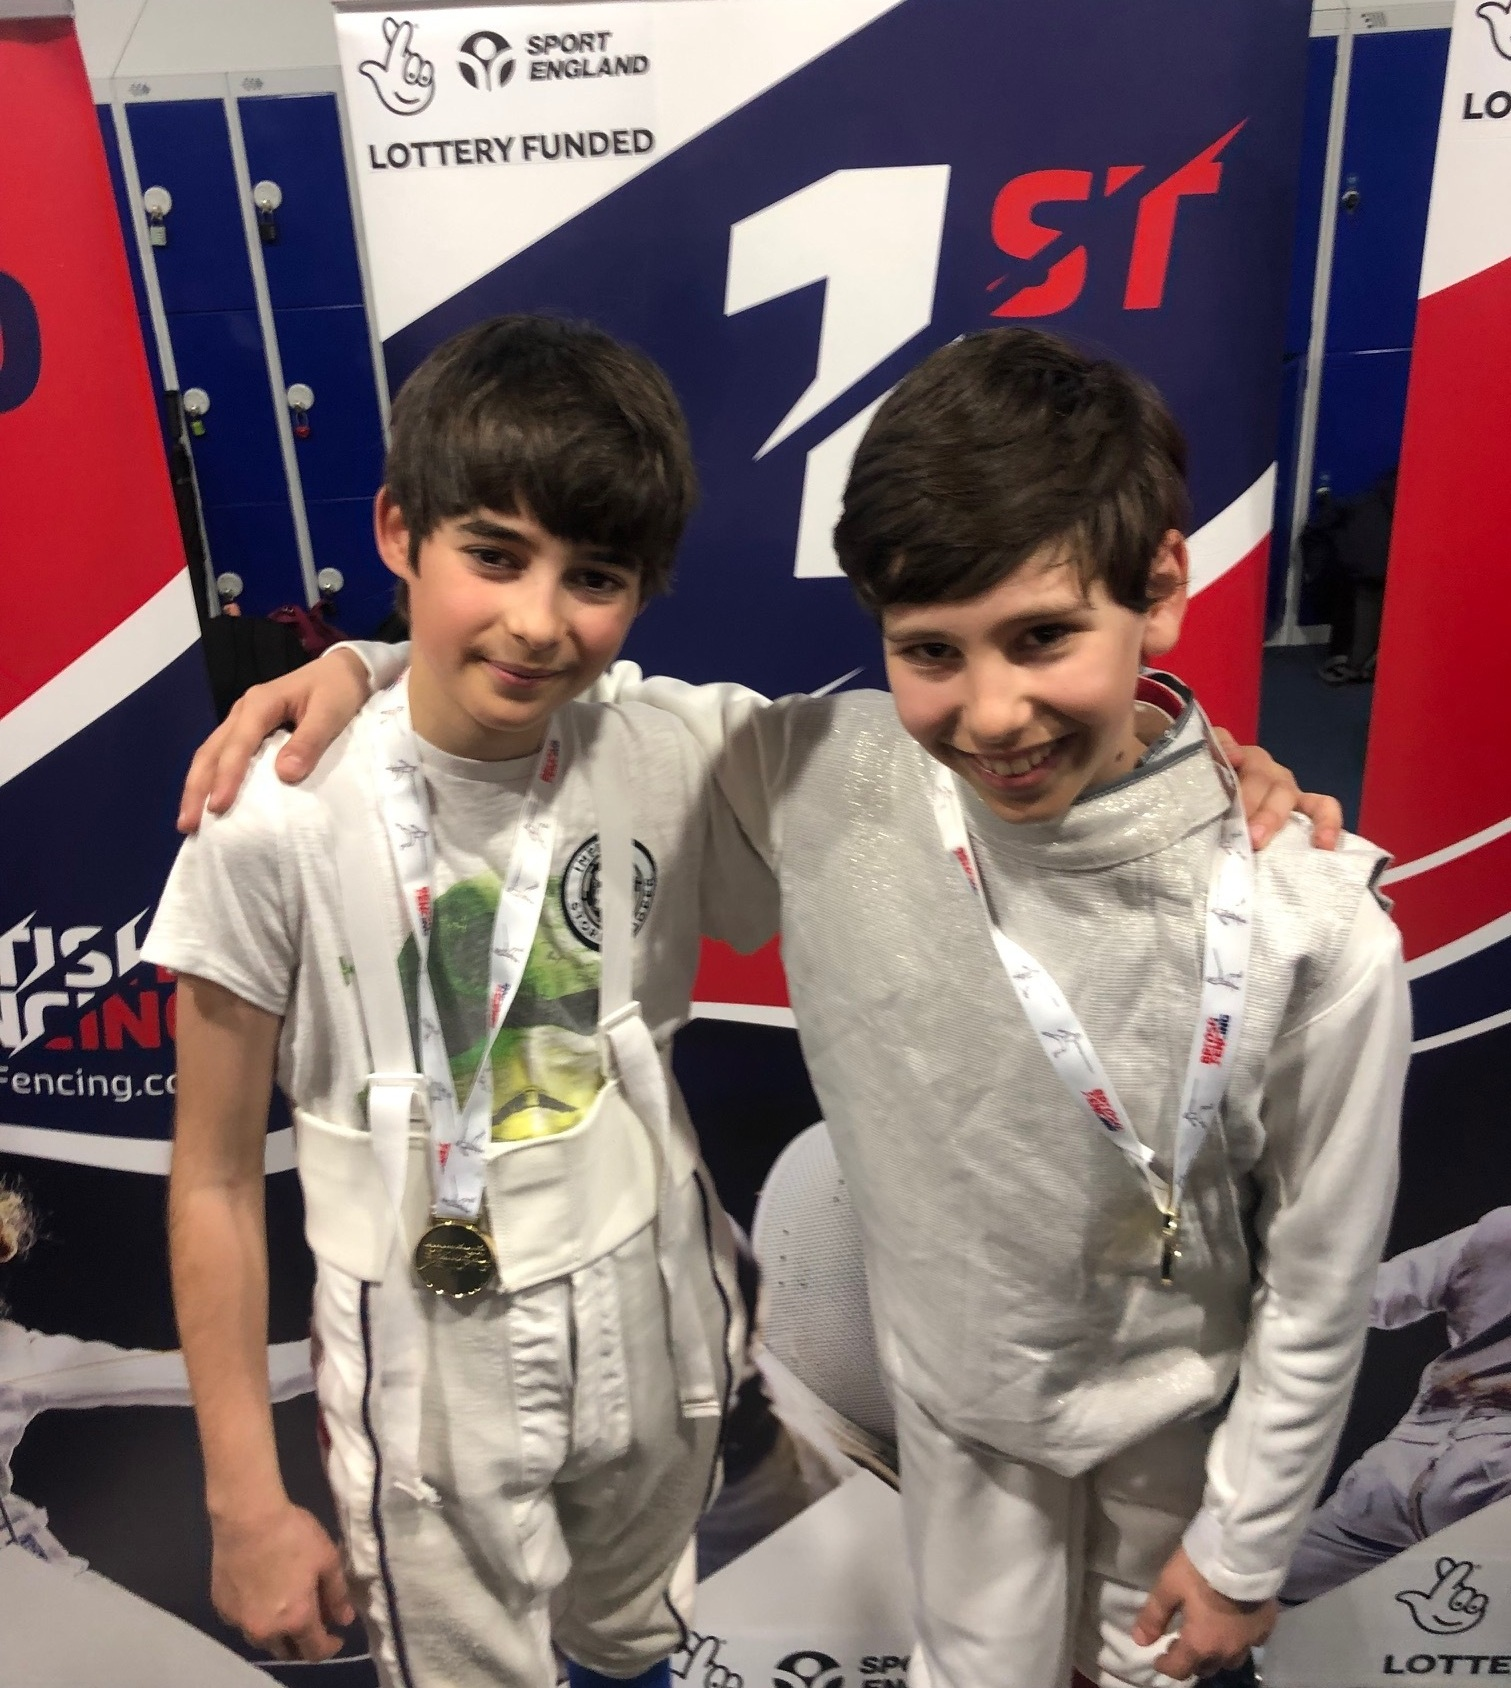 Caspian+and+Sinan+Fencing+Gold+Medal.jpg